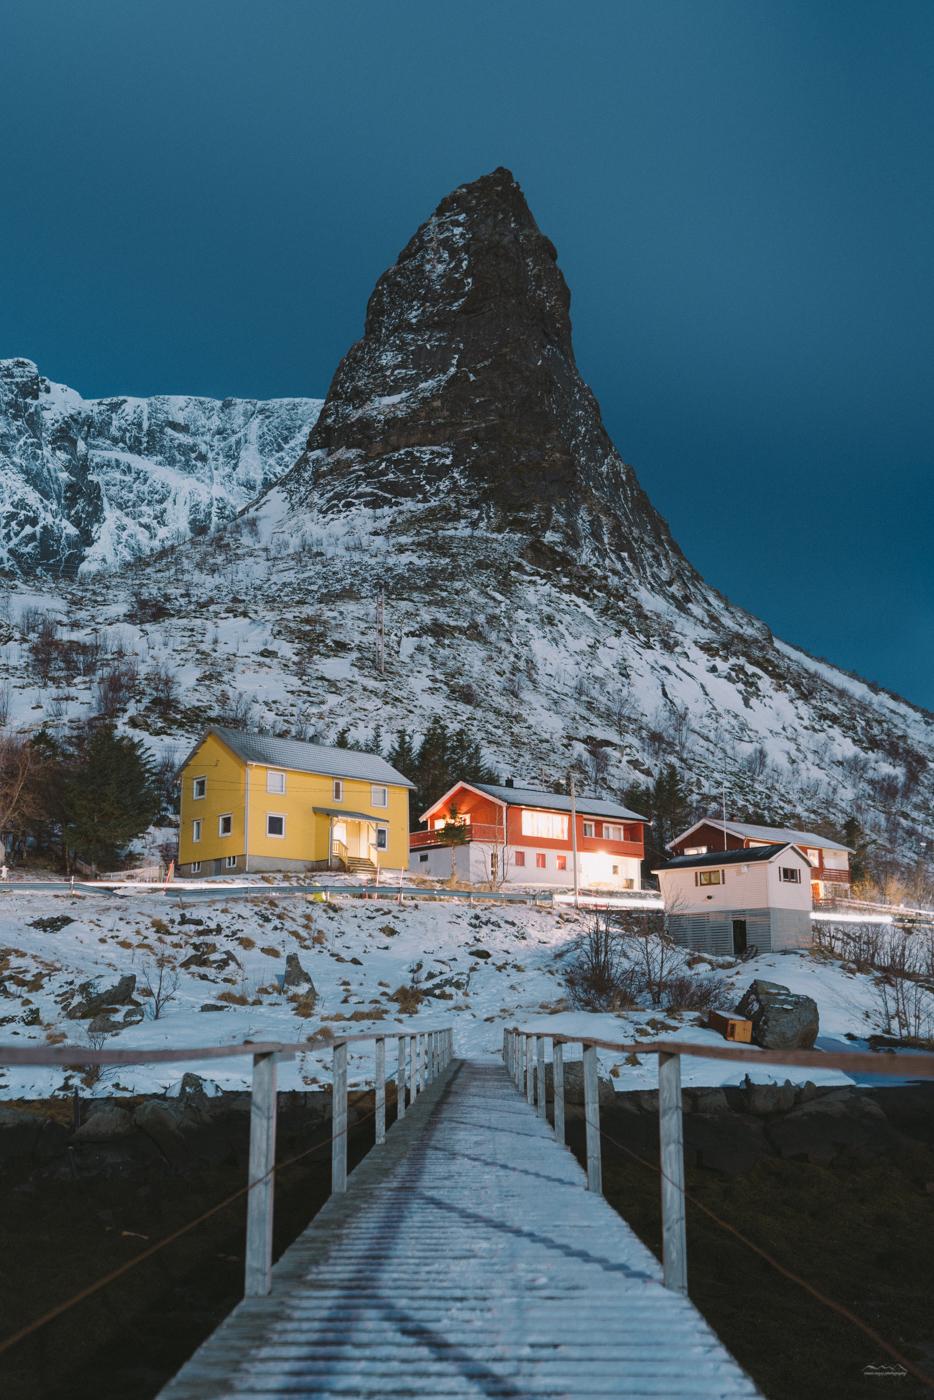 Reine classic bridge photo